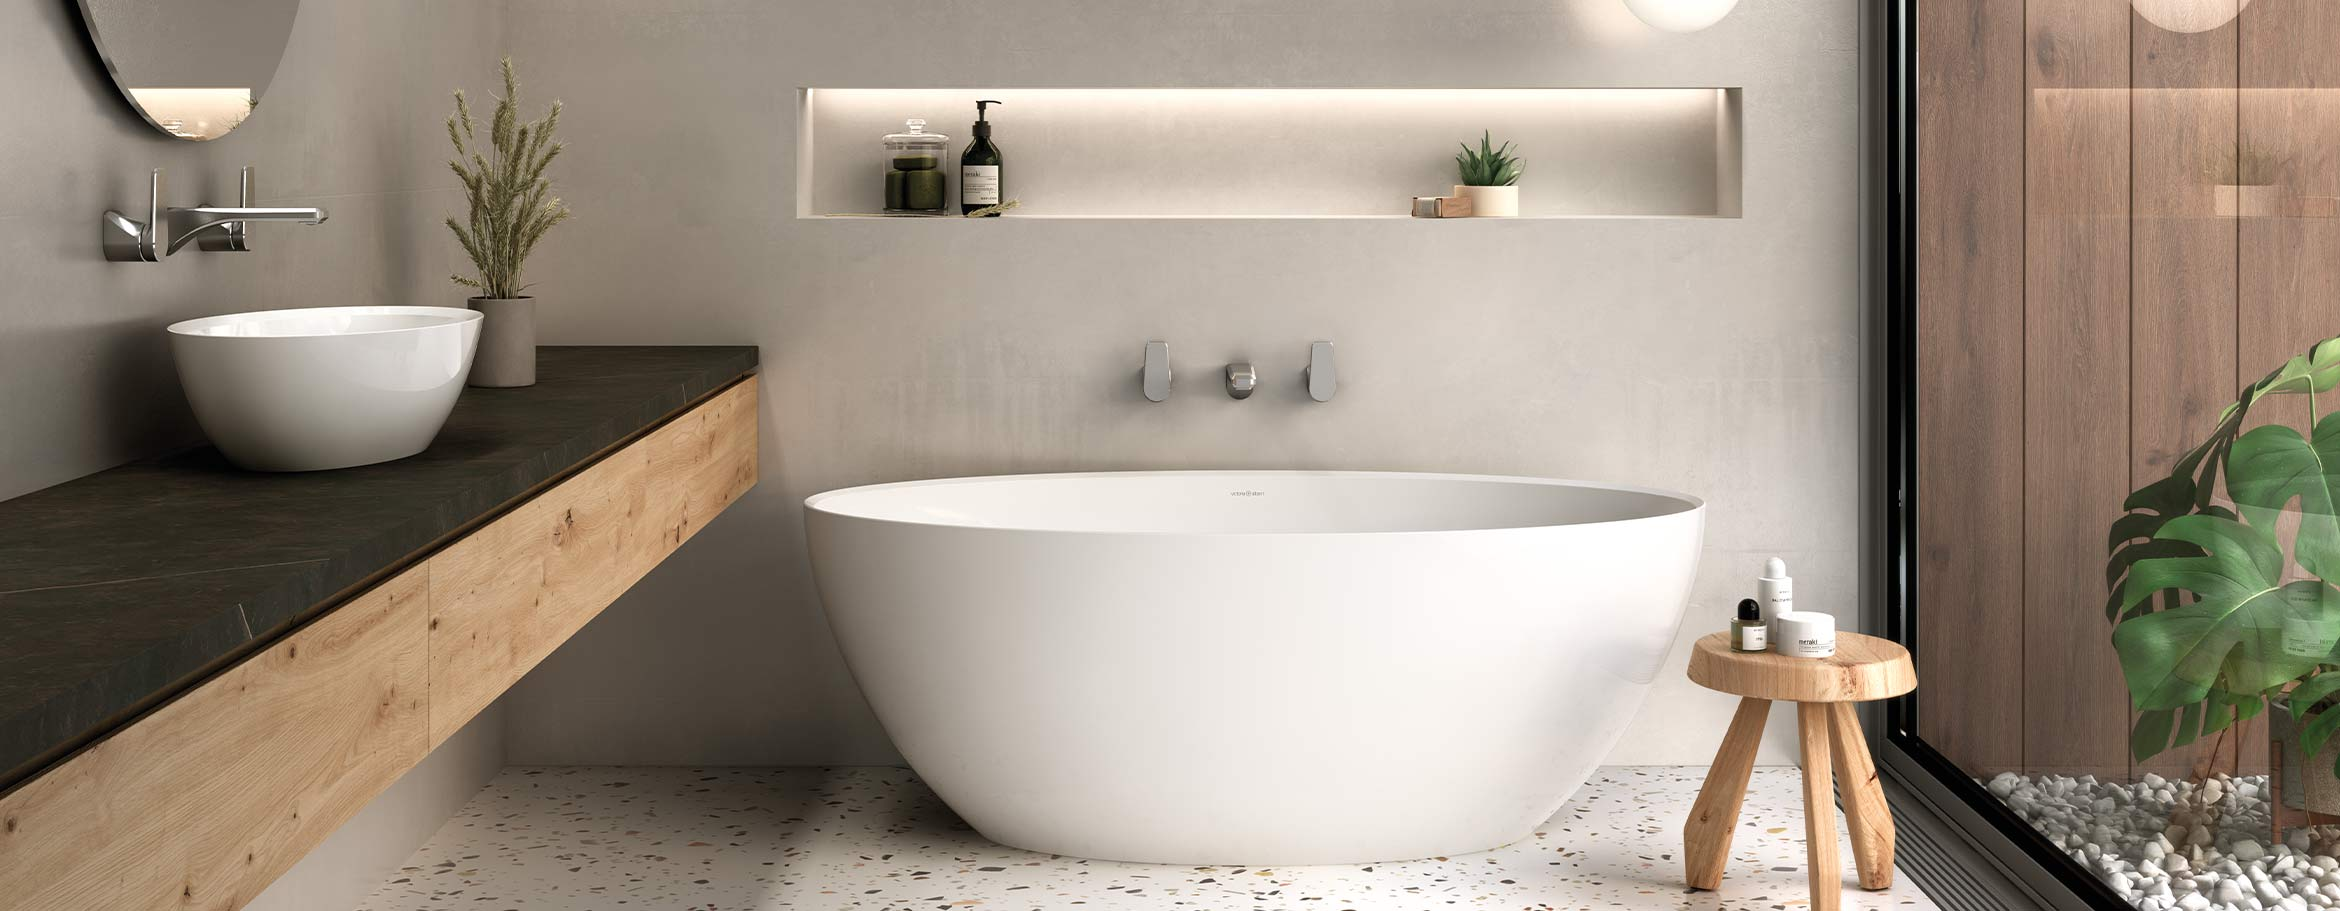 Victoria + Albert Corvara white stone 1500mm bath, distributed in Australia by Luxe by Design, Brisbane.